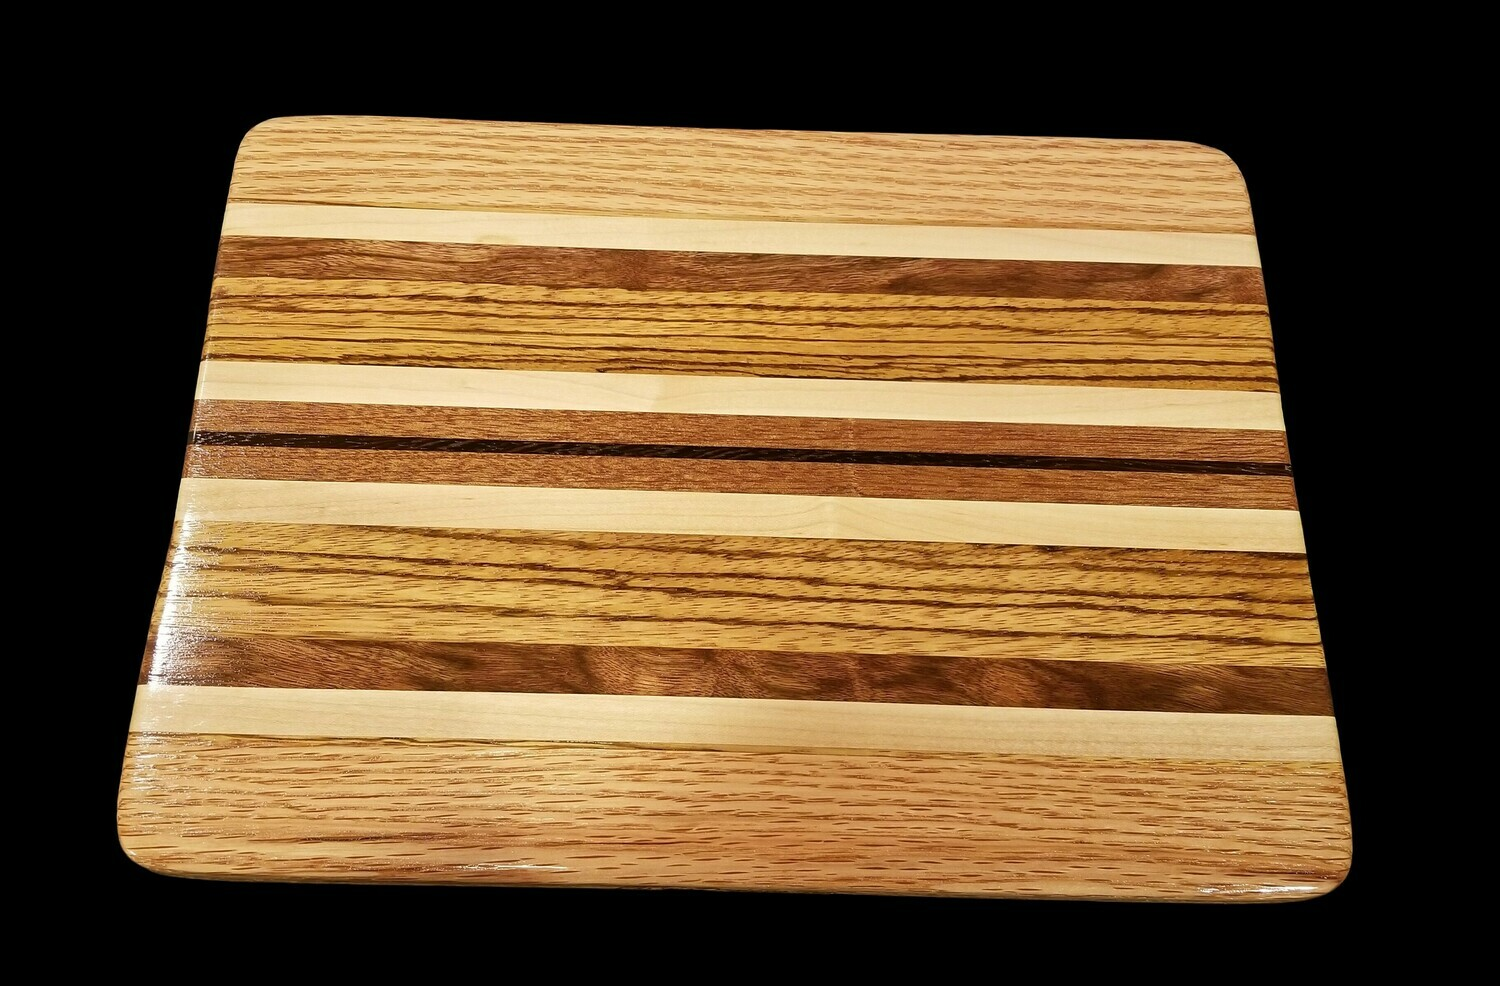 "Cutting Board, Long Grain, 13 1/2"" x 10"" x 5/8"" Thick"